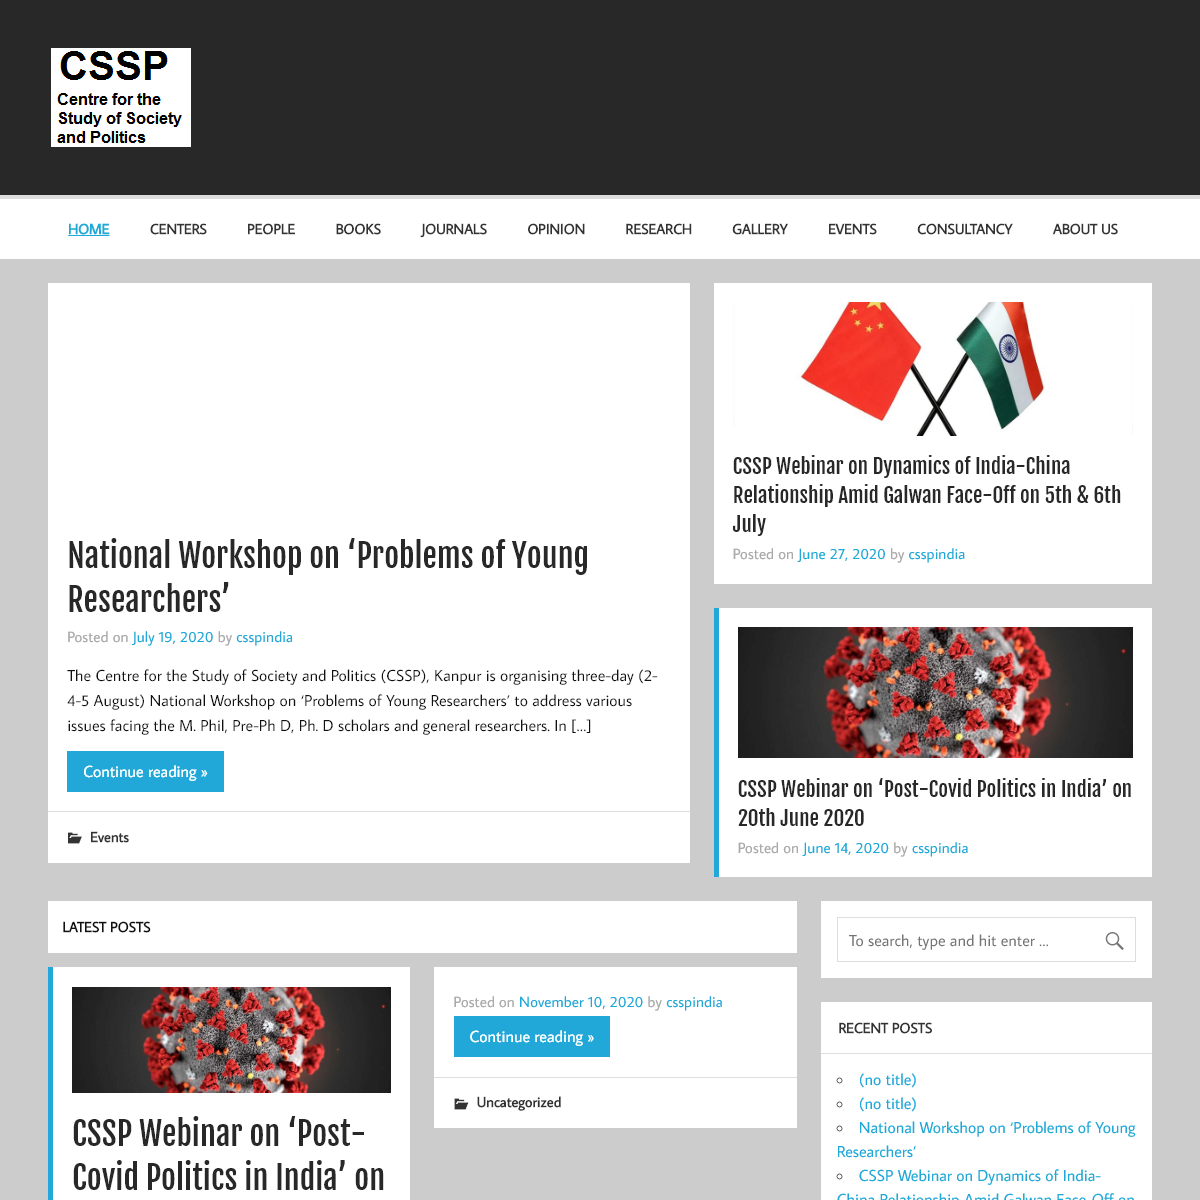 CSSP - Centre for the Study of Society and Politics